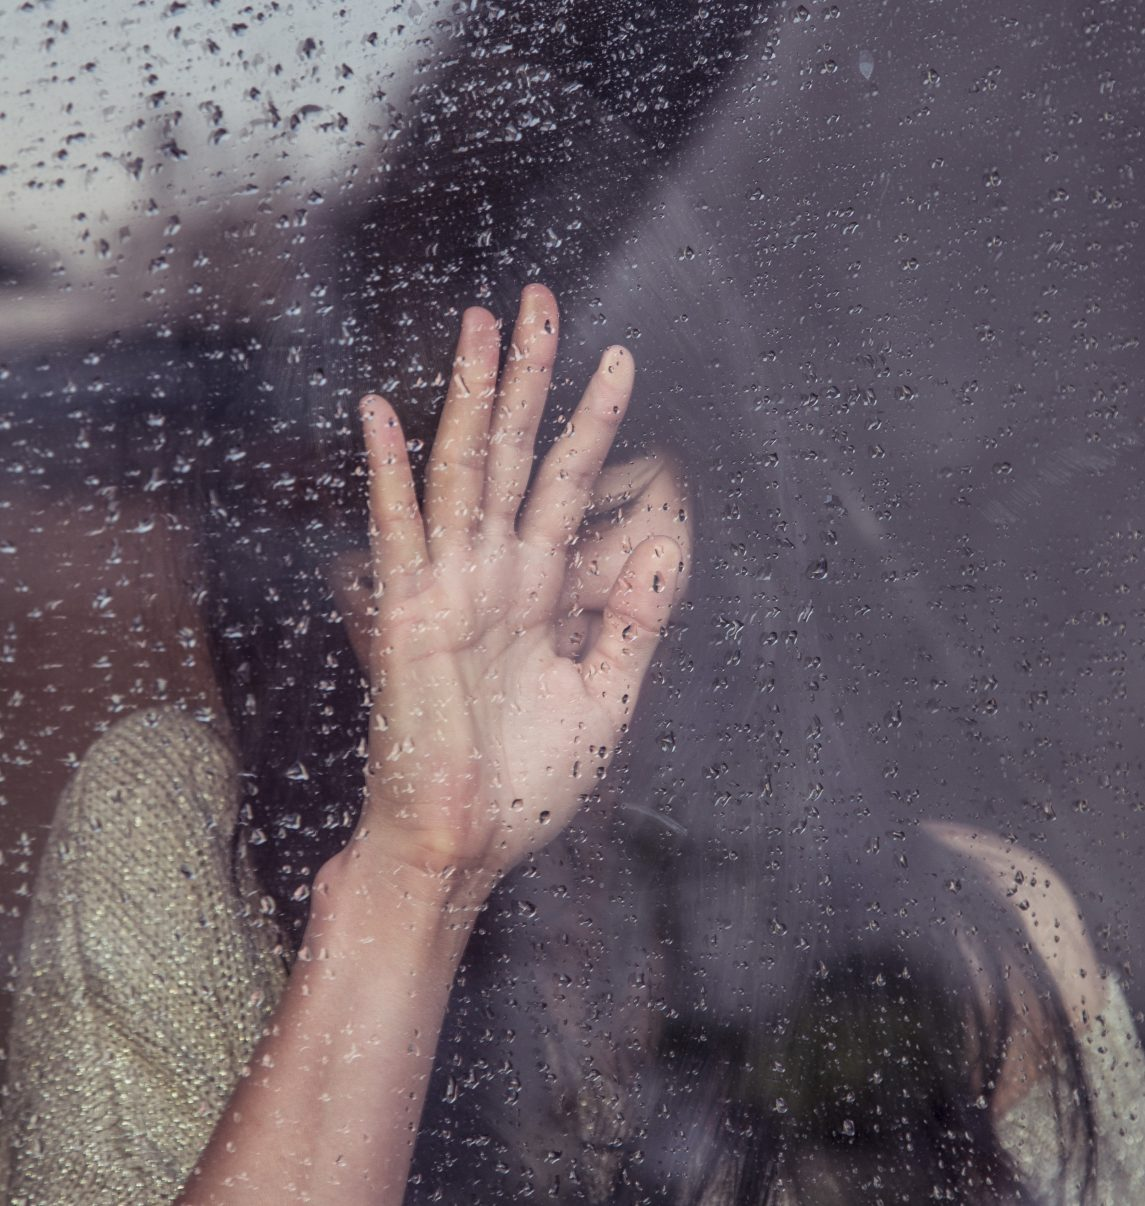 Woman devastated over a rainy window